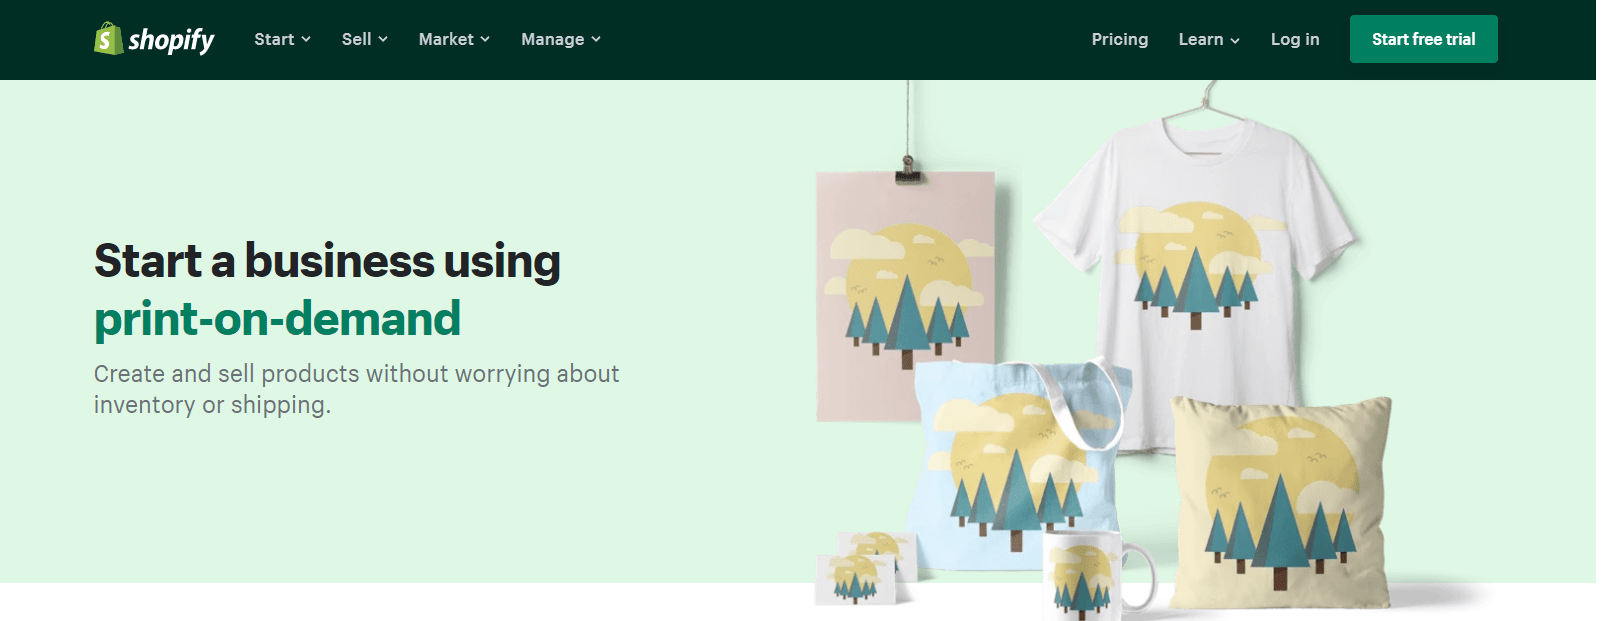 print-on-demand for Shopify